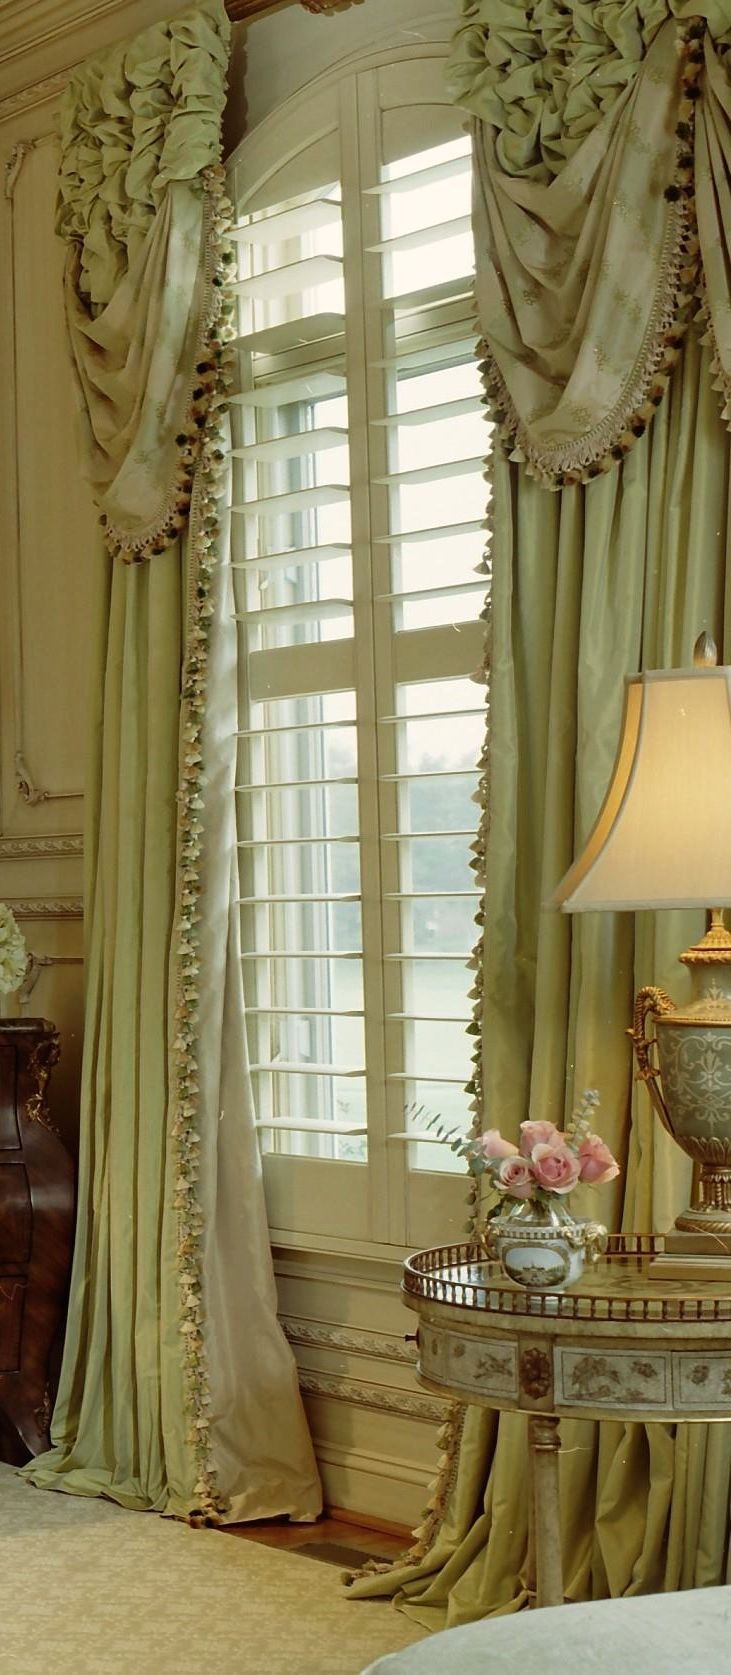 Decorating theme bedrooms maries manor window treatments curtains - Find This Pin And More On Window And Bedding Beauties